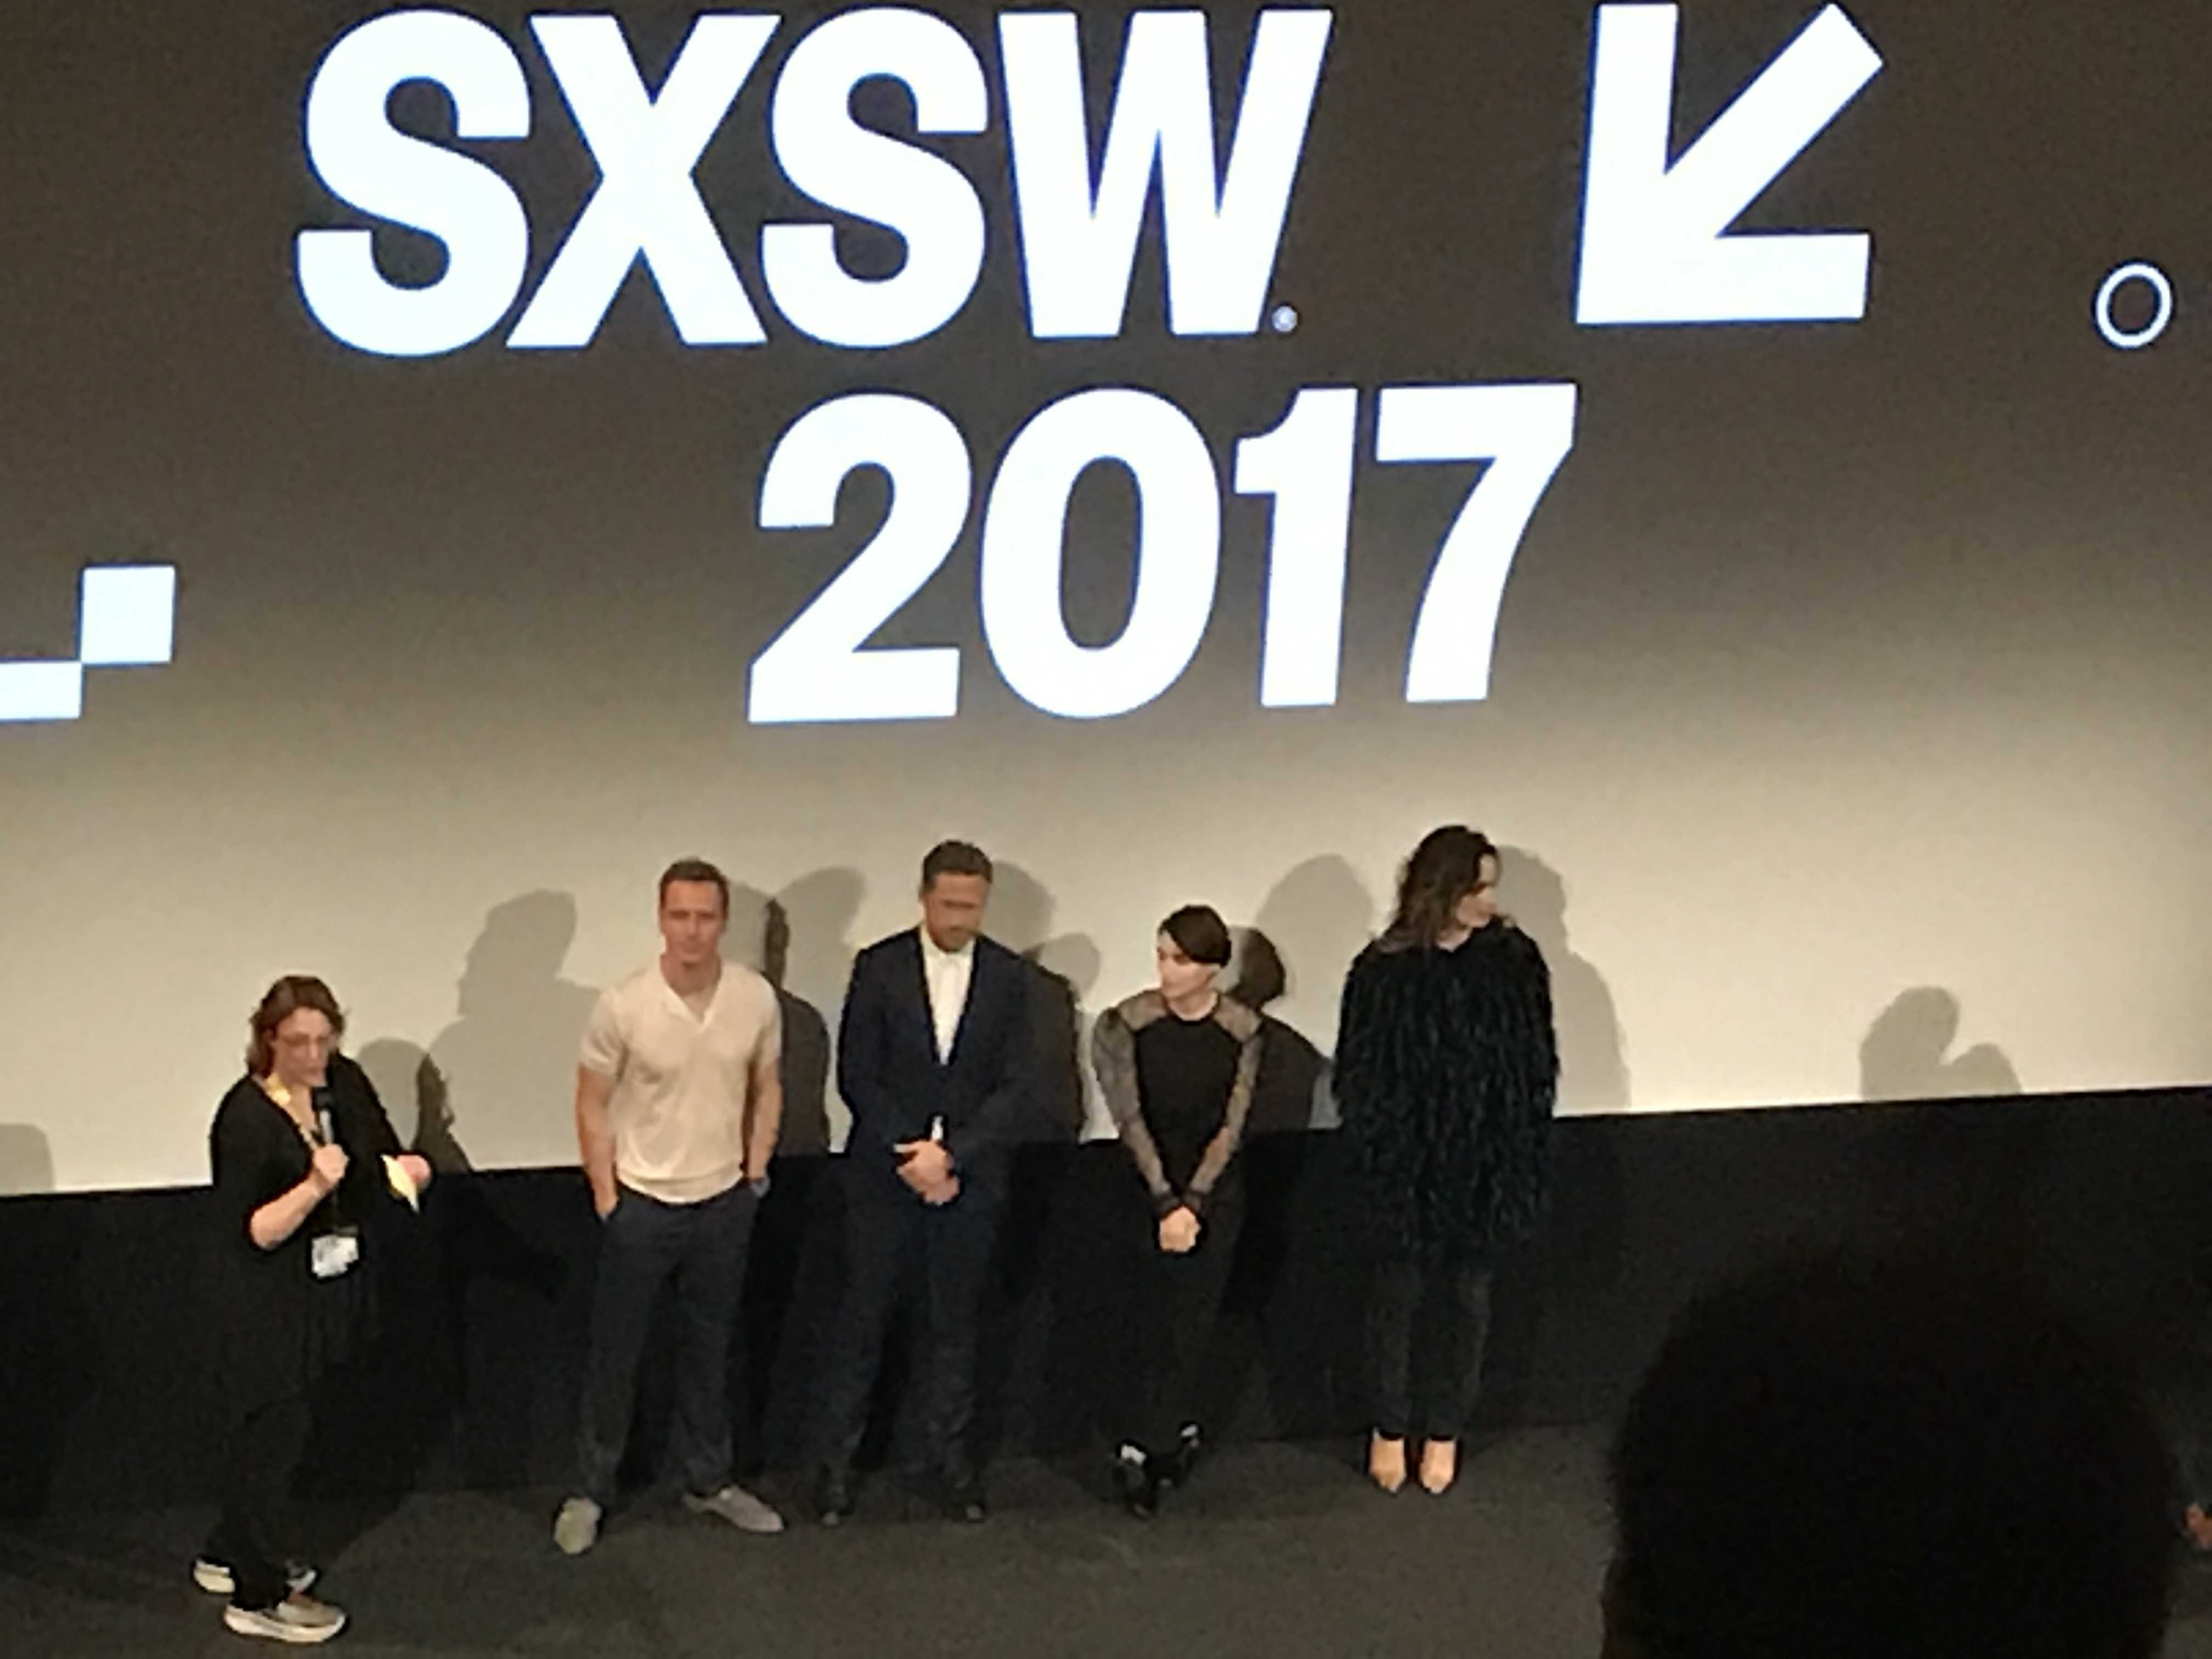 SXSW premiere of 'Song to Song' (l-r: Michael Fassbender, Ryan Gosling, Rooney Mara and Bérénice Marlohe)